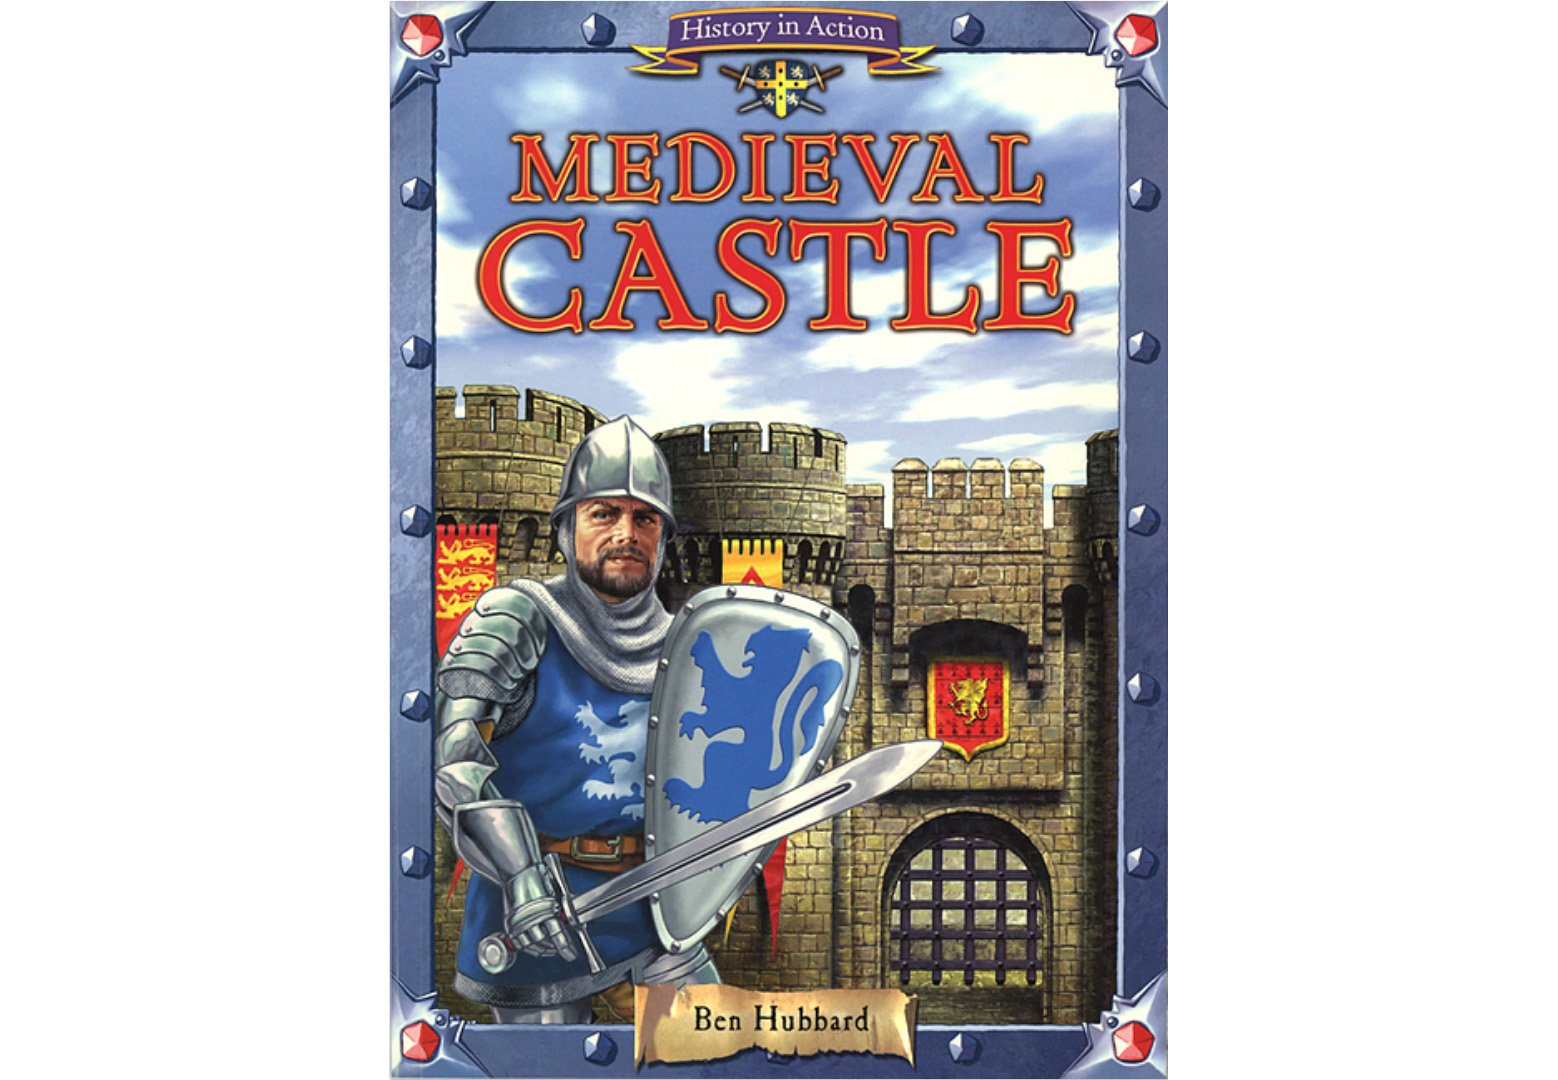 2 castle cover copy